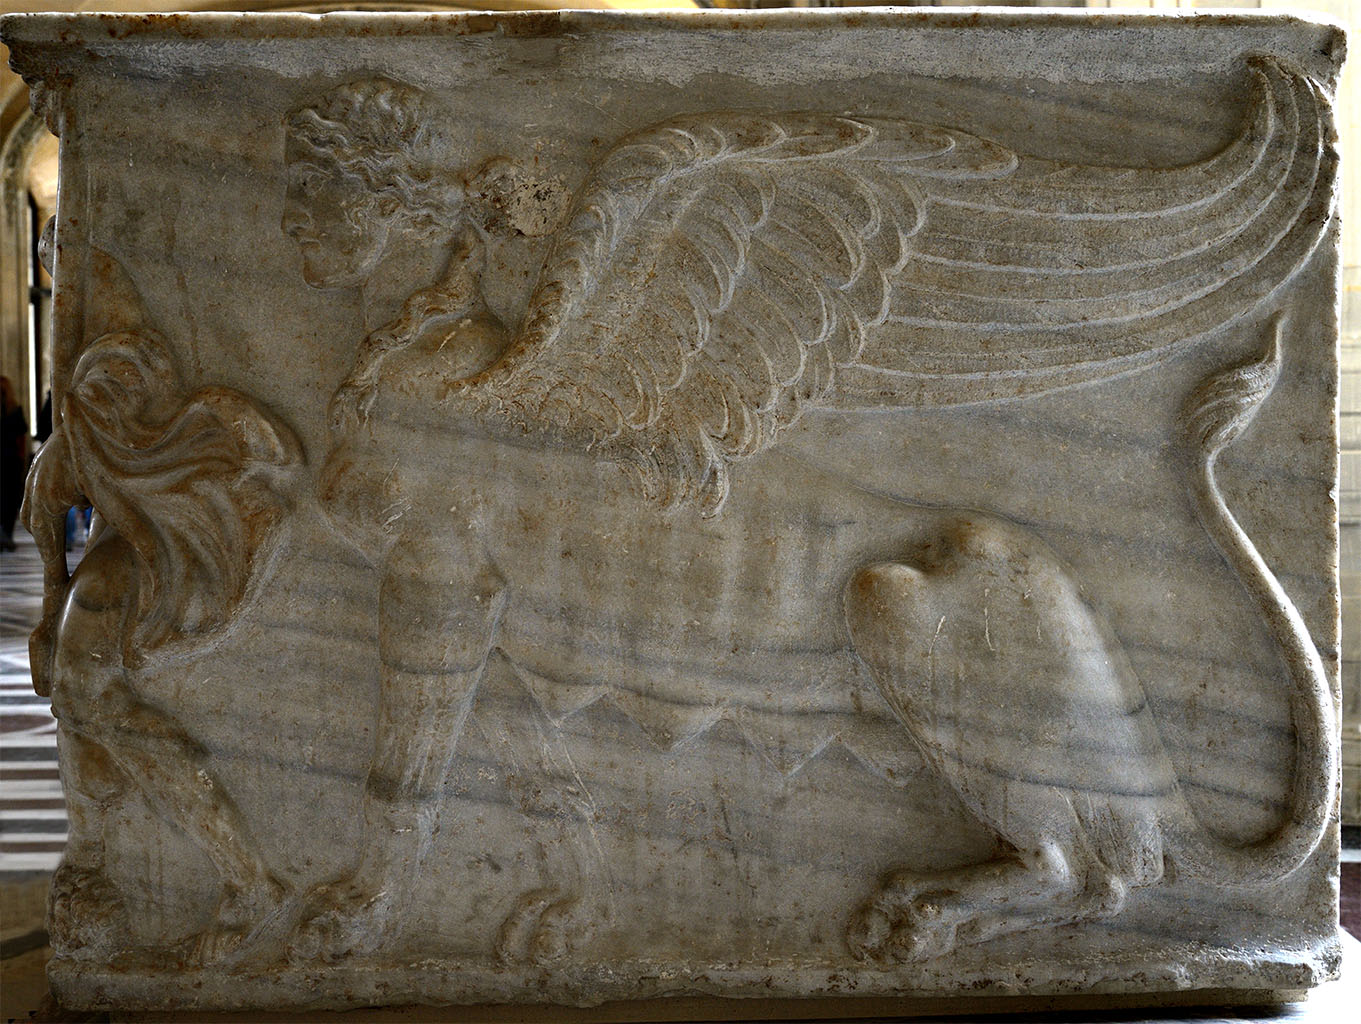 Sarcophagus with scenes from the myth of Meleager (side panel). Marble. Roman work ca. 180 CE. Inv. No. Ma 539. Paris, Louvre Museum